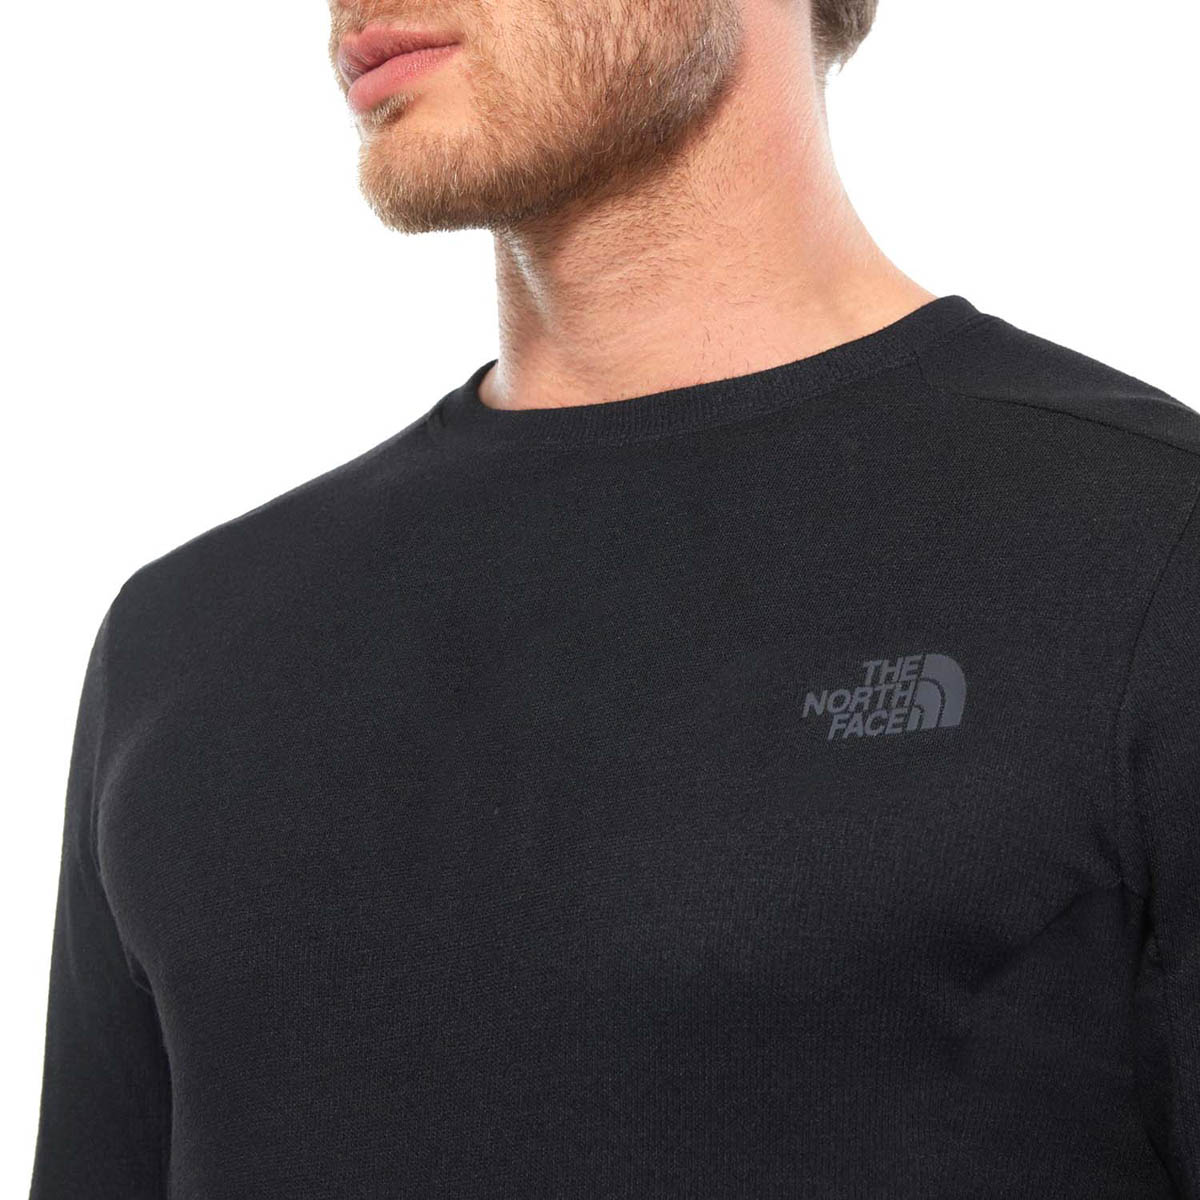 THE NORTH FACE - EASY LONG-SLEEVE TOP